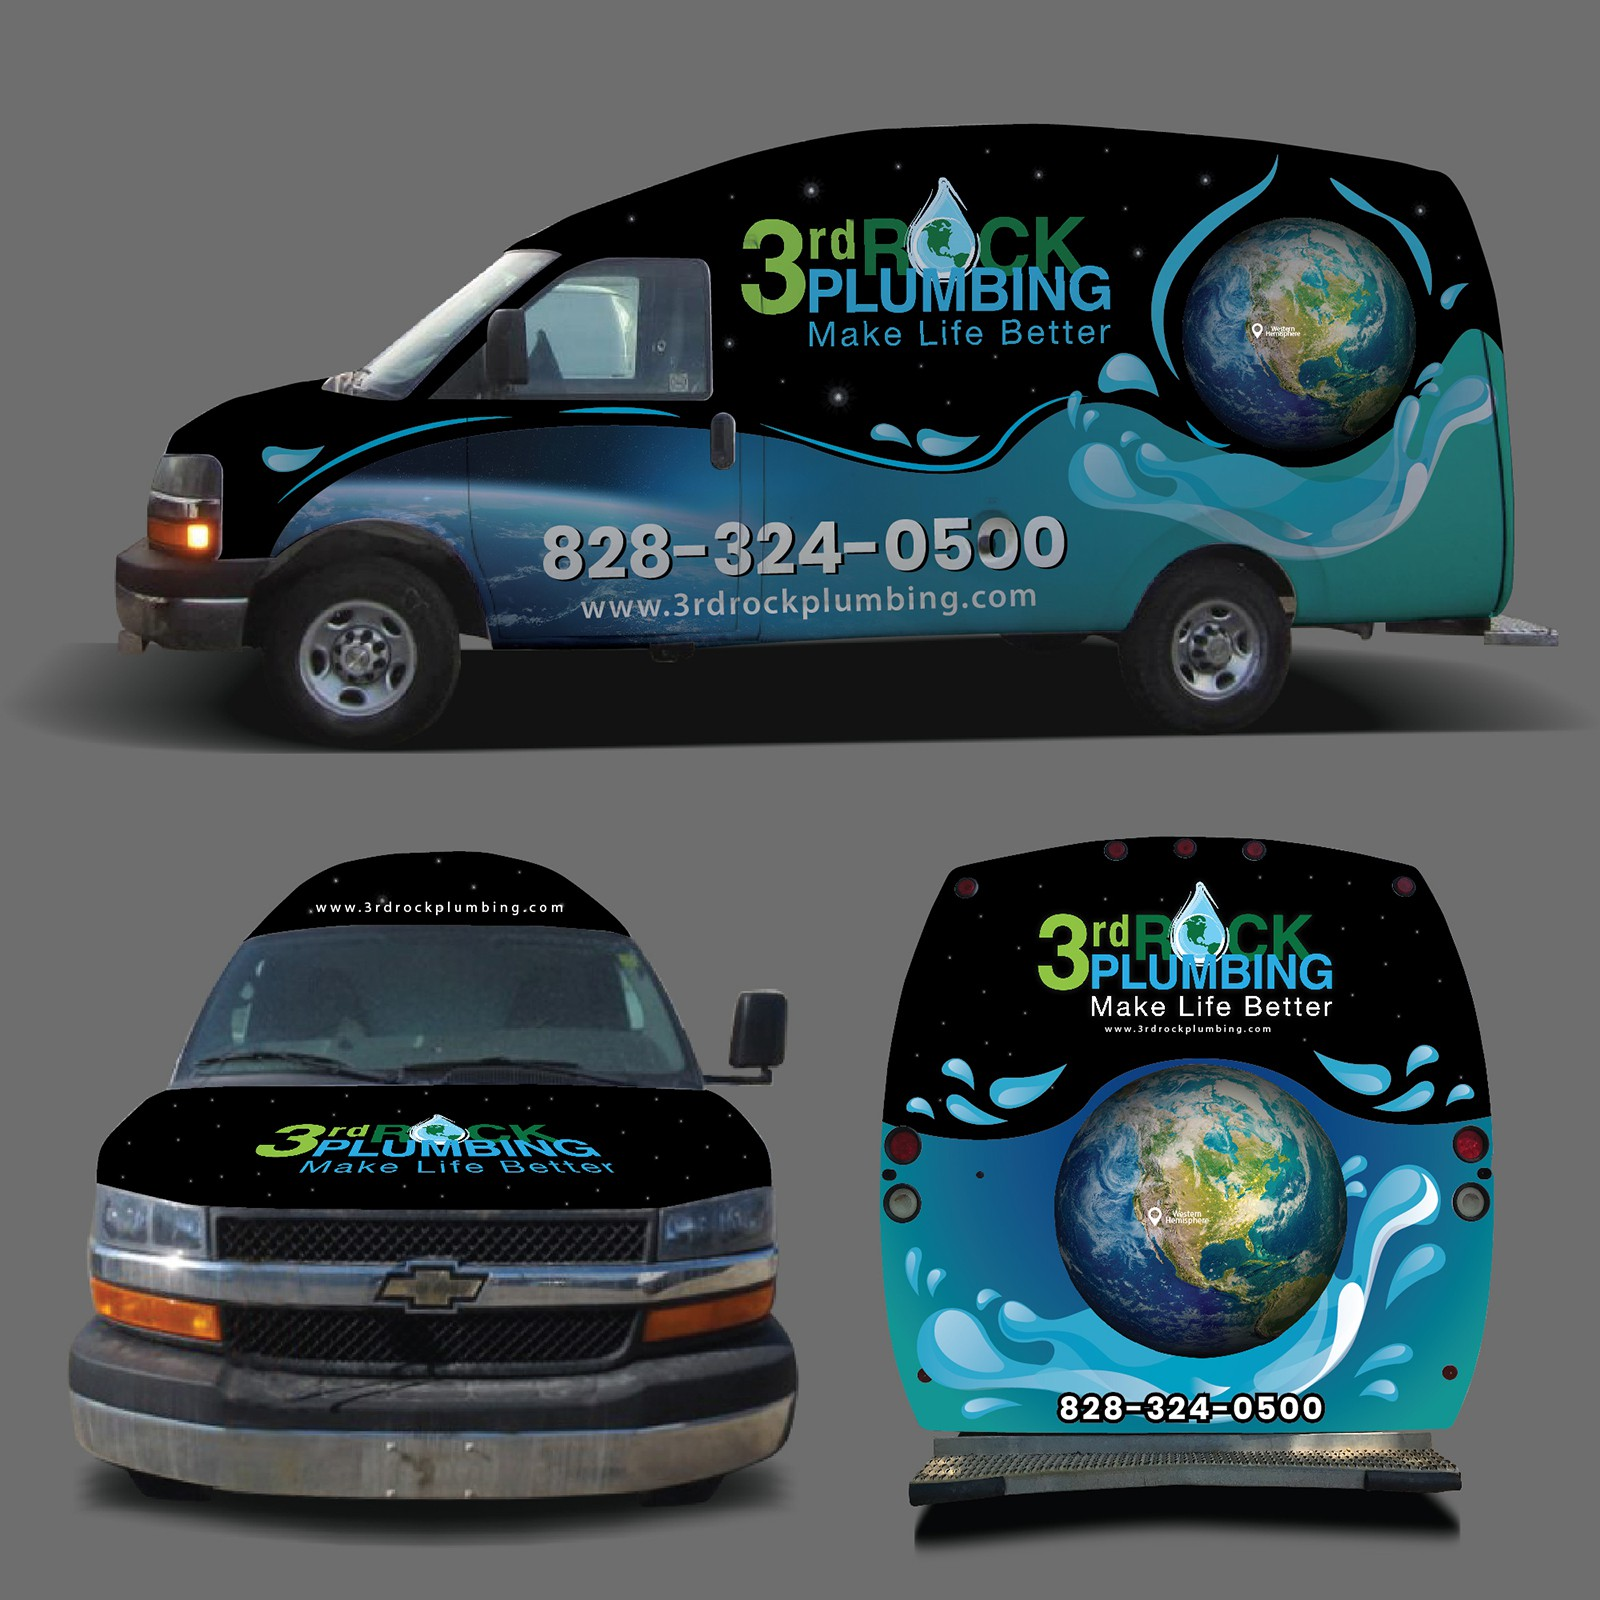 3rd Rock Plumbing needs a logo that is out of this world